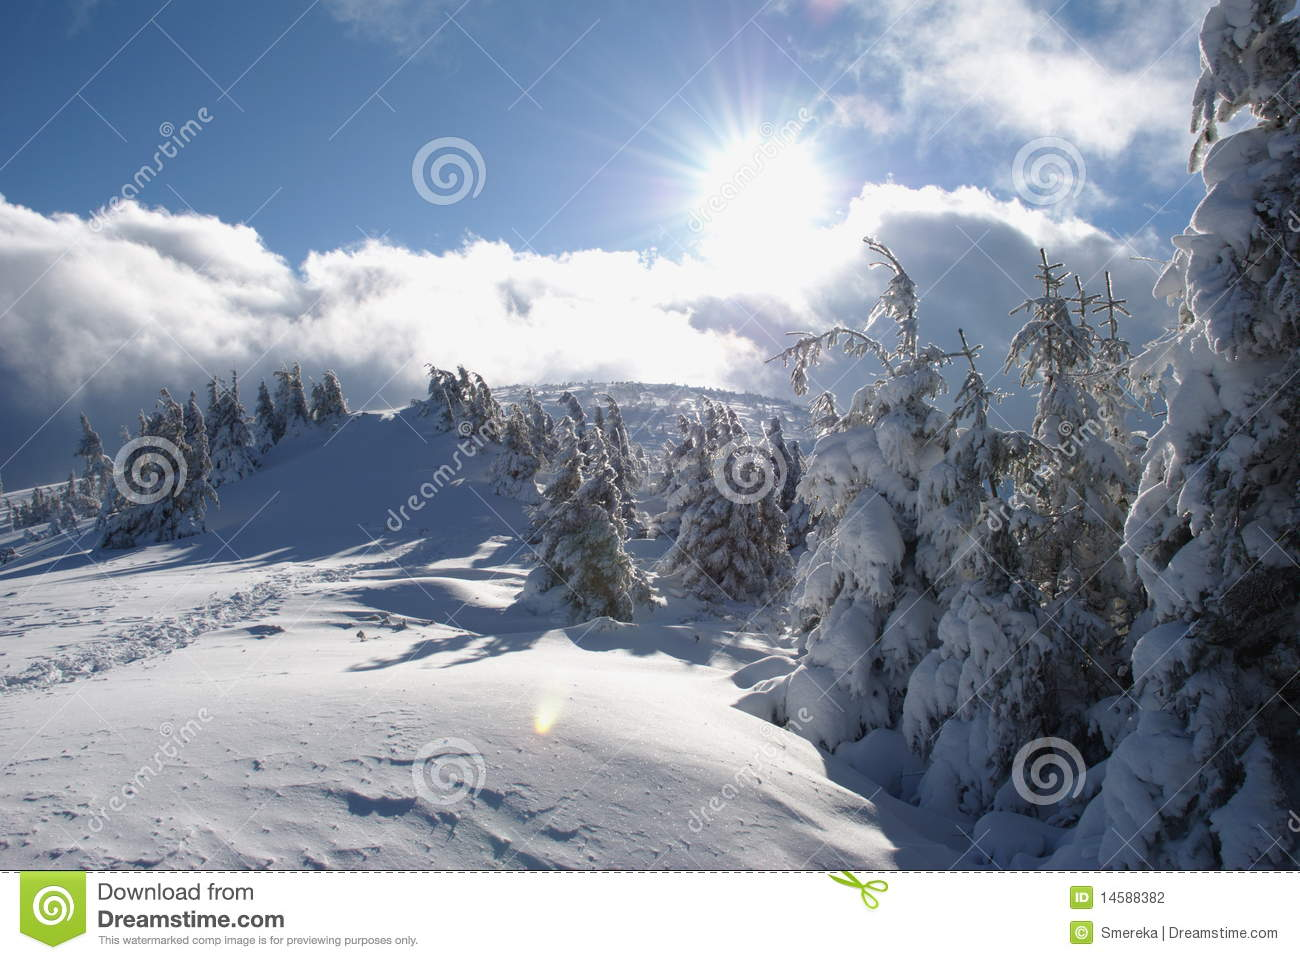 Fur trees On A HillsideStock PhotographyImage: 14588382 107